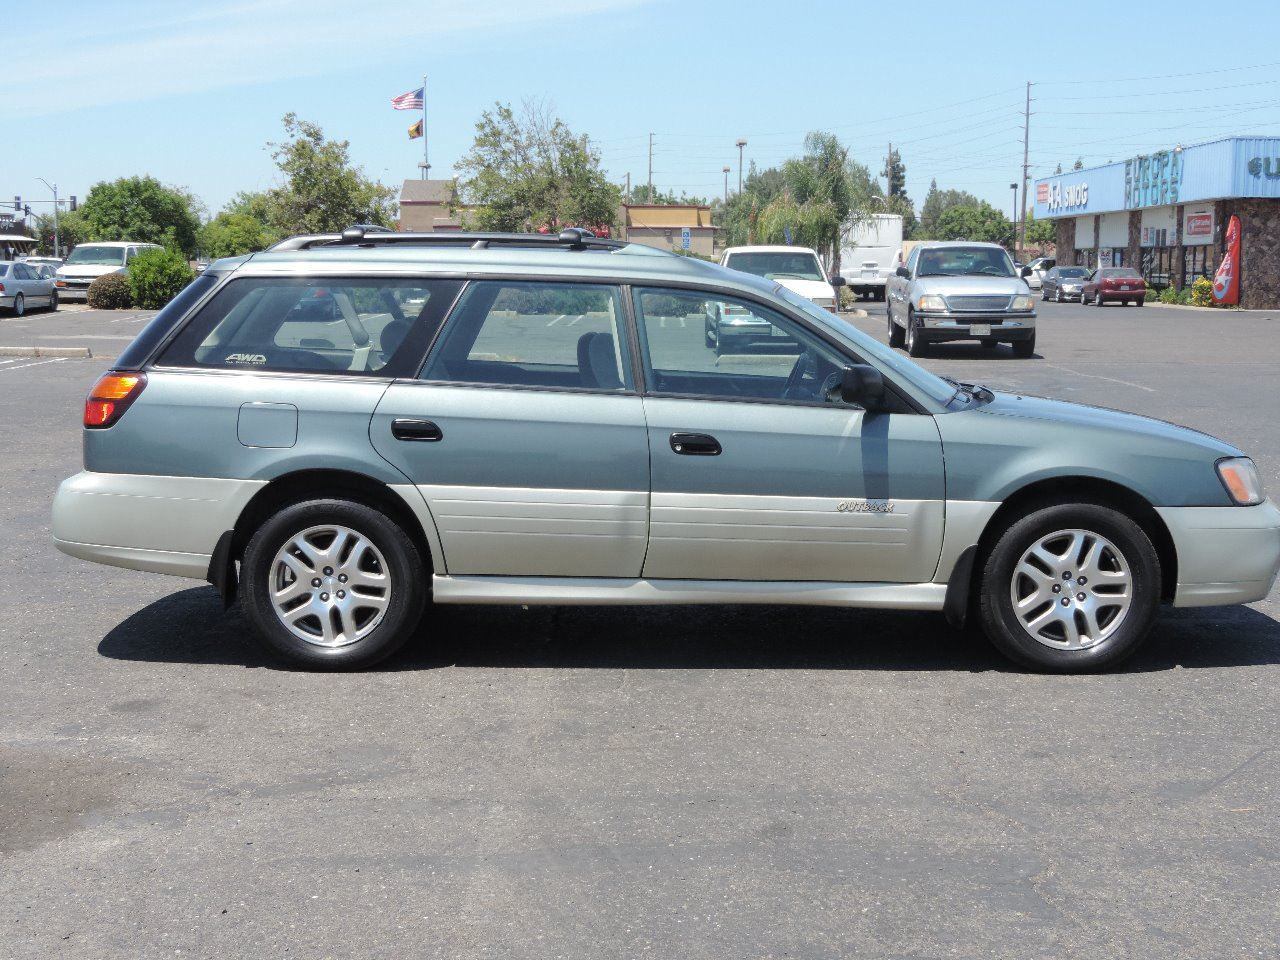 2000 Subaru Outback Awd 4dr Wagon In Modesto Ca Valley Auto Outlet Legacy Contact